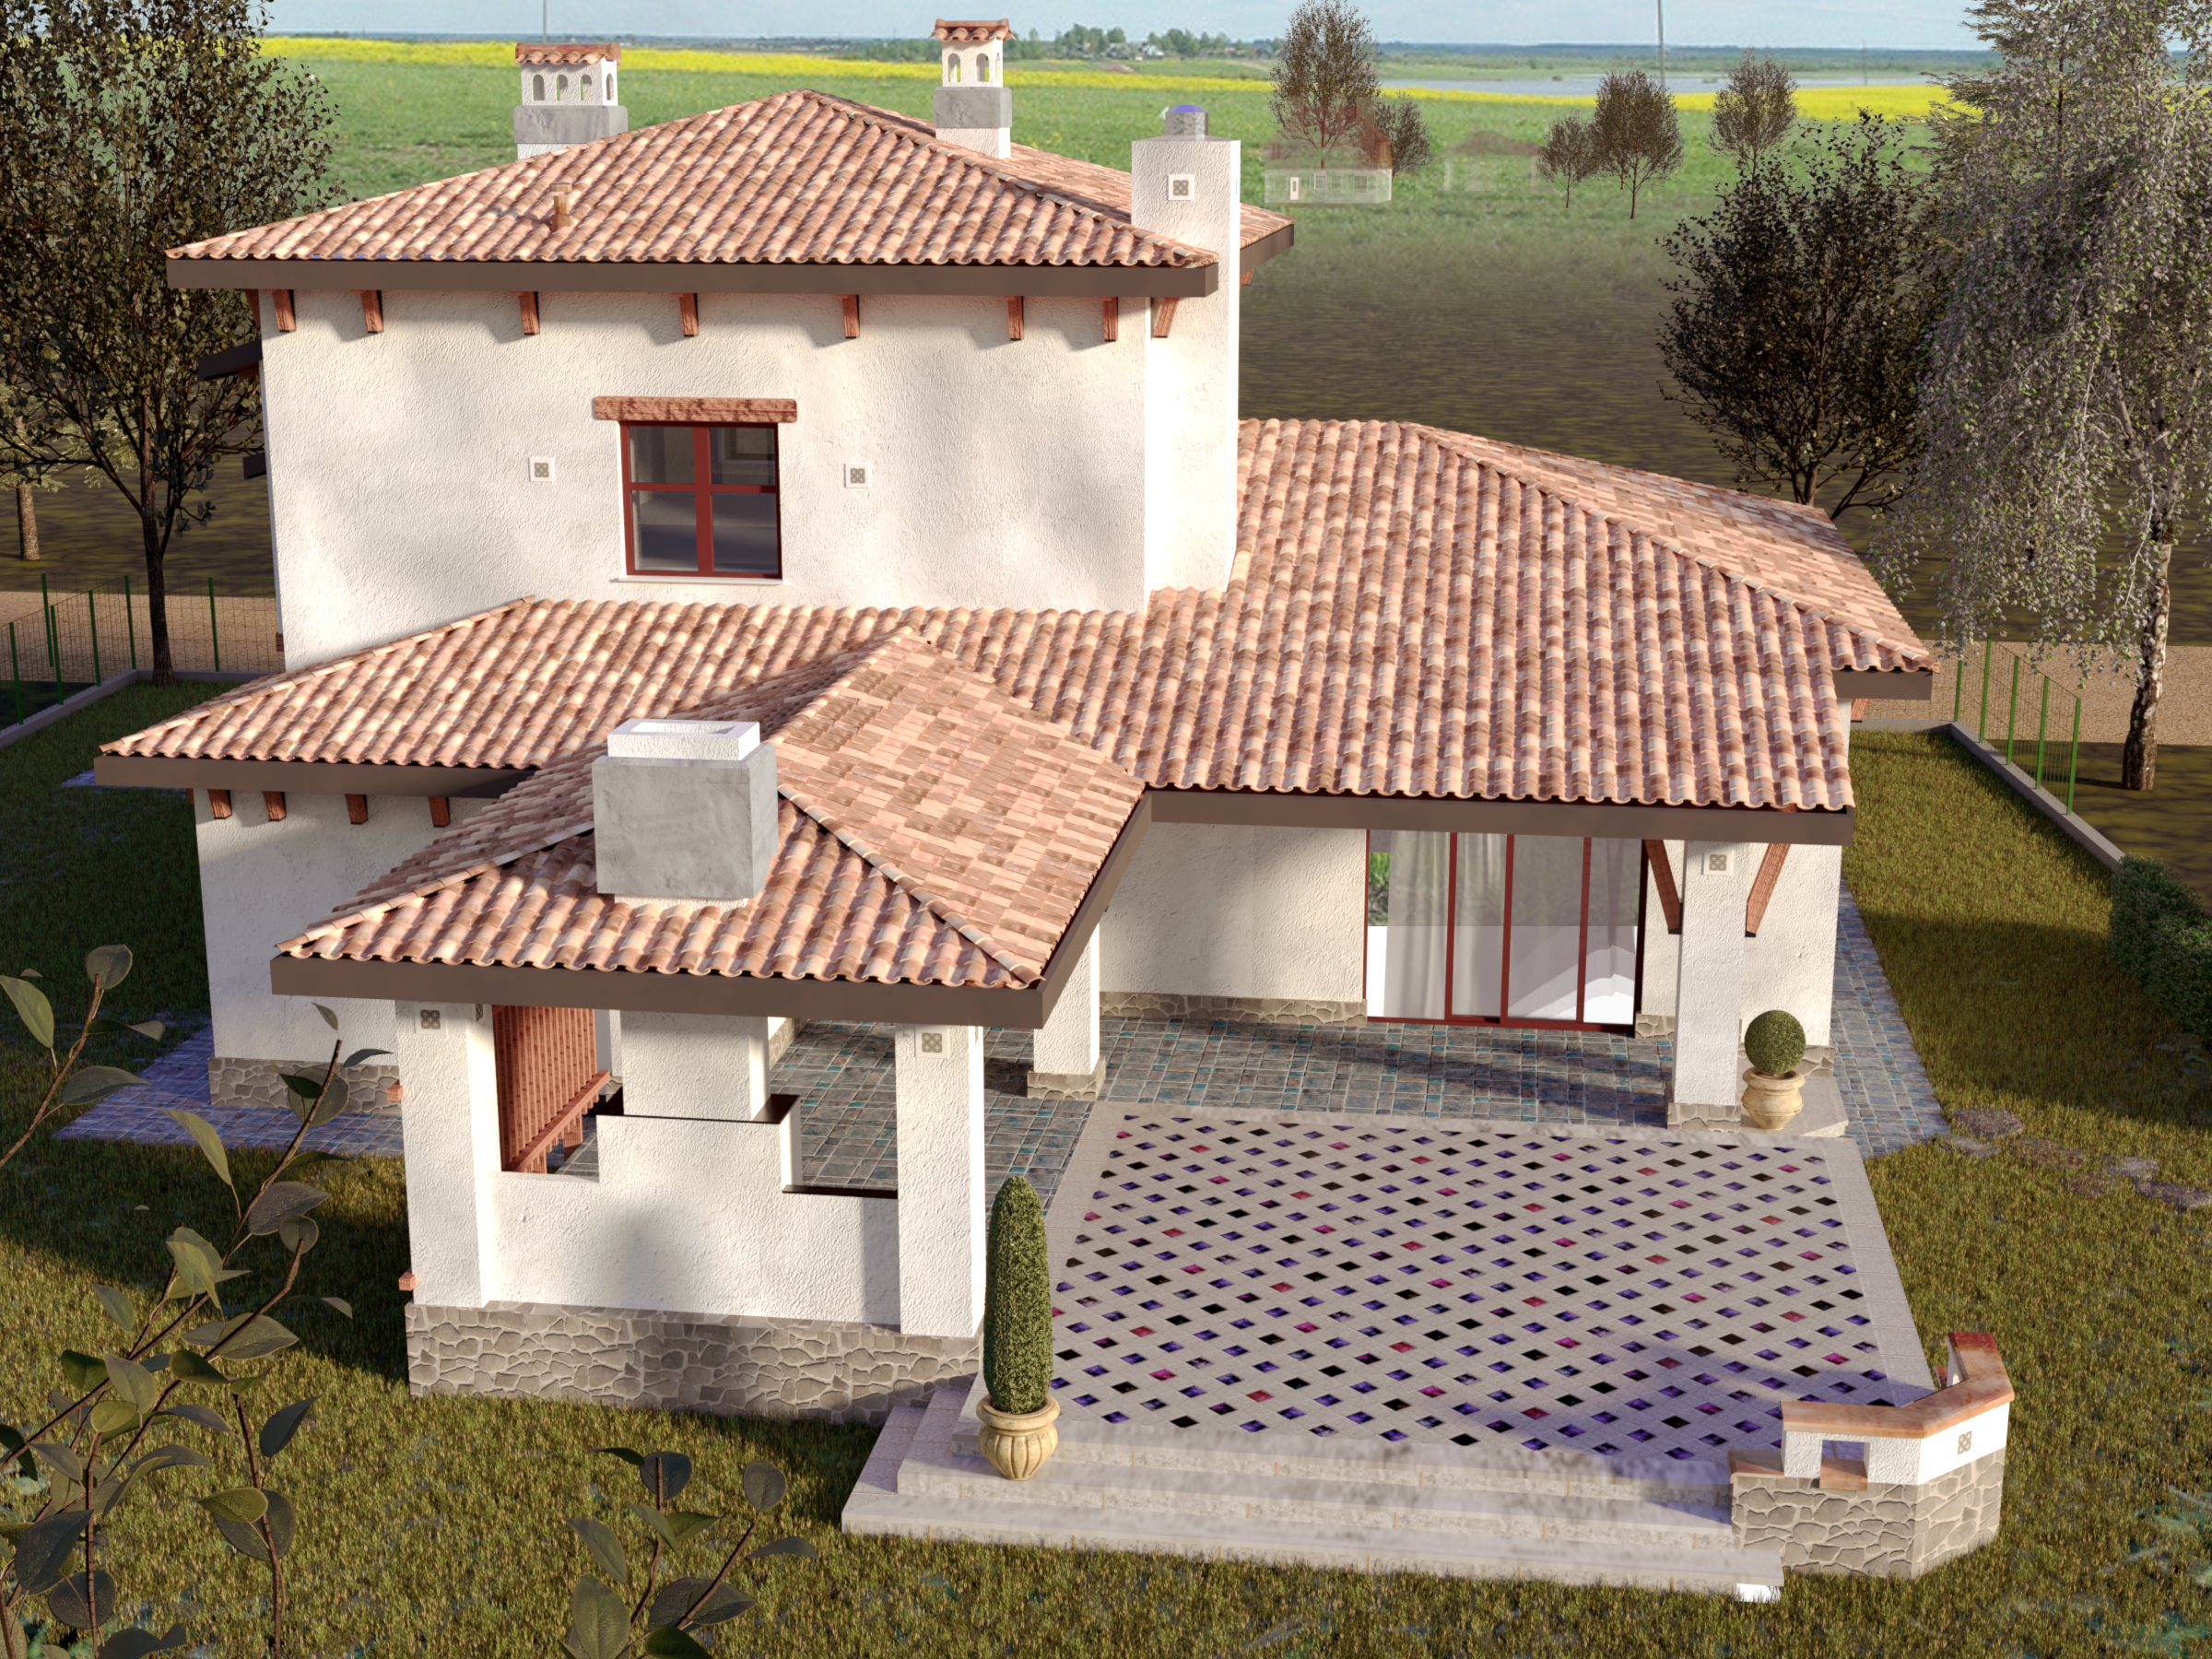 Mediterranean style house project with terraces with panoramic windows, view 7